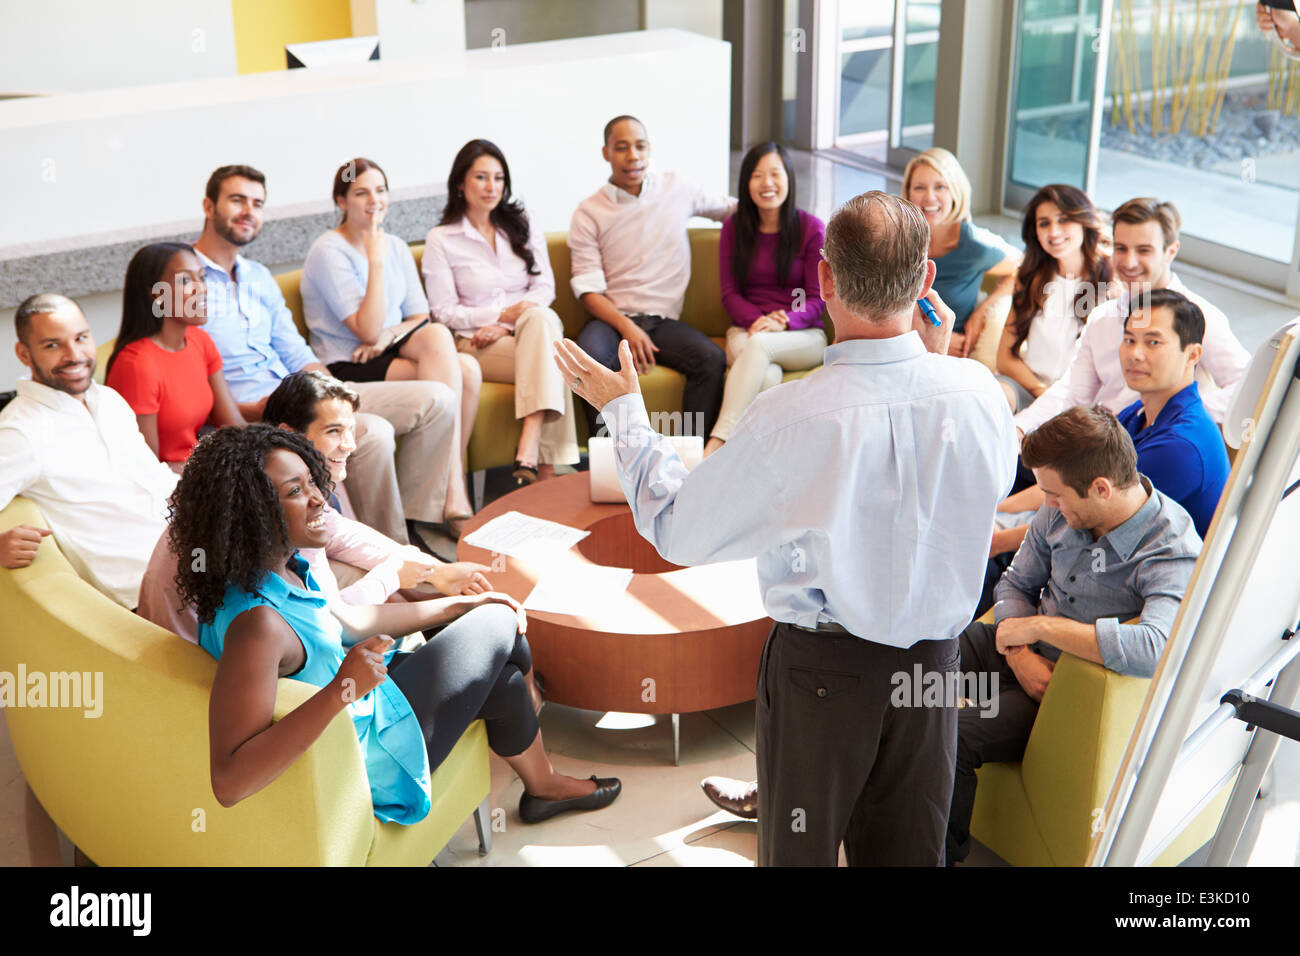 Businessman Making Presentation To Office Colleagues - Stock Image